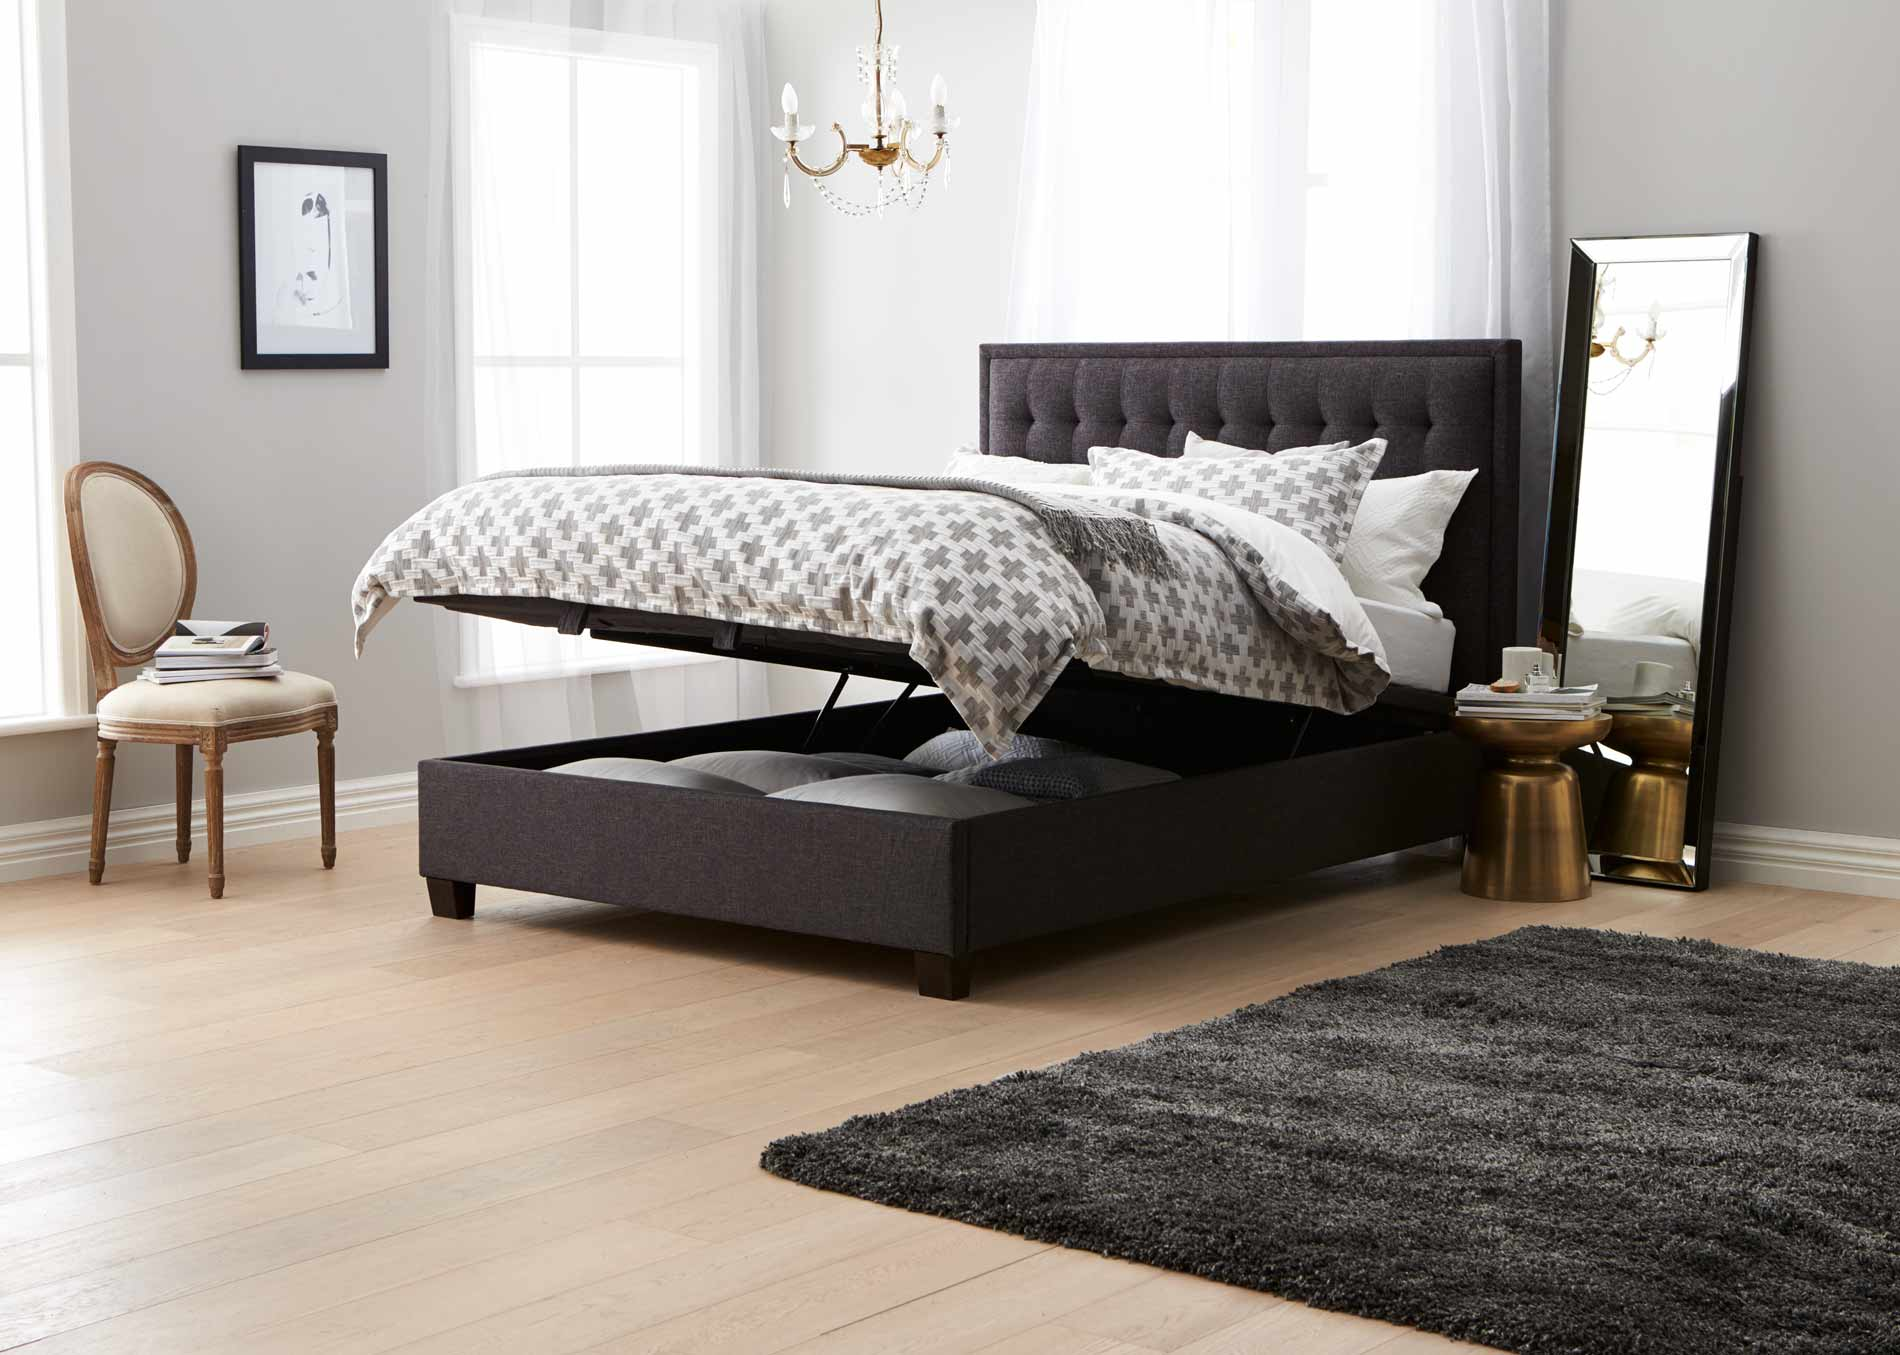 Image Result For Bedroom Ideas With Dark Grey Furniture